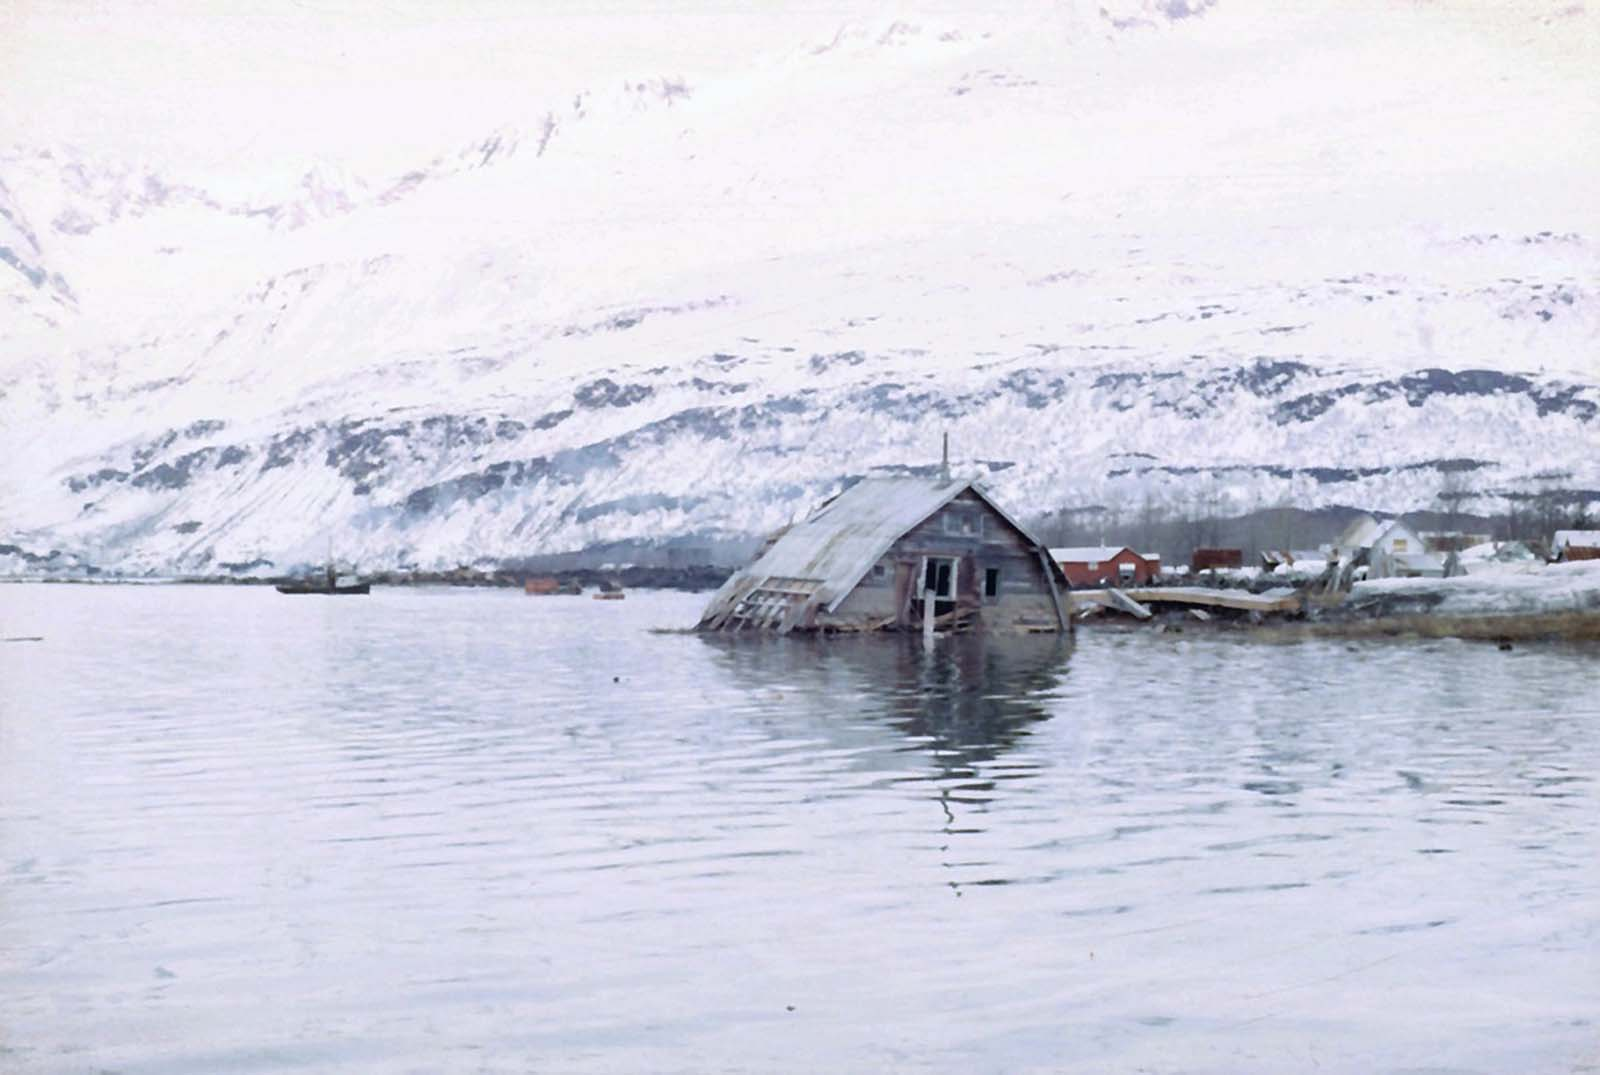 The roof of a structure dragged into an Alaskan bay after the 1964 earthquake.